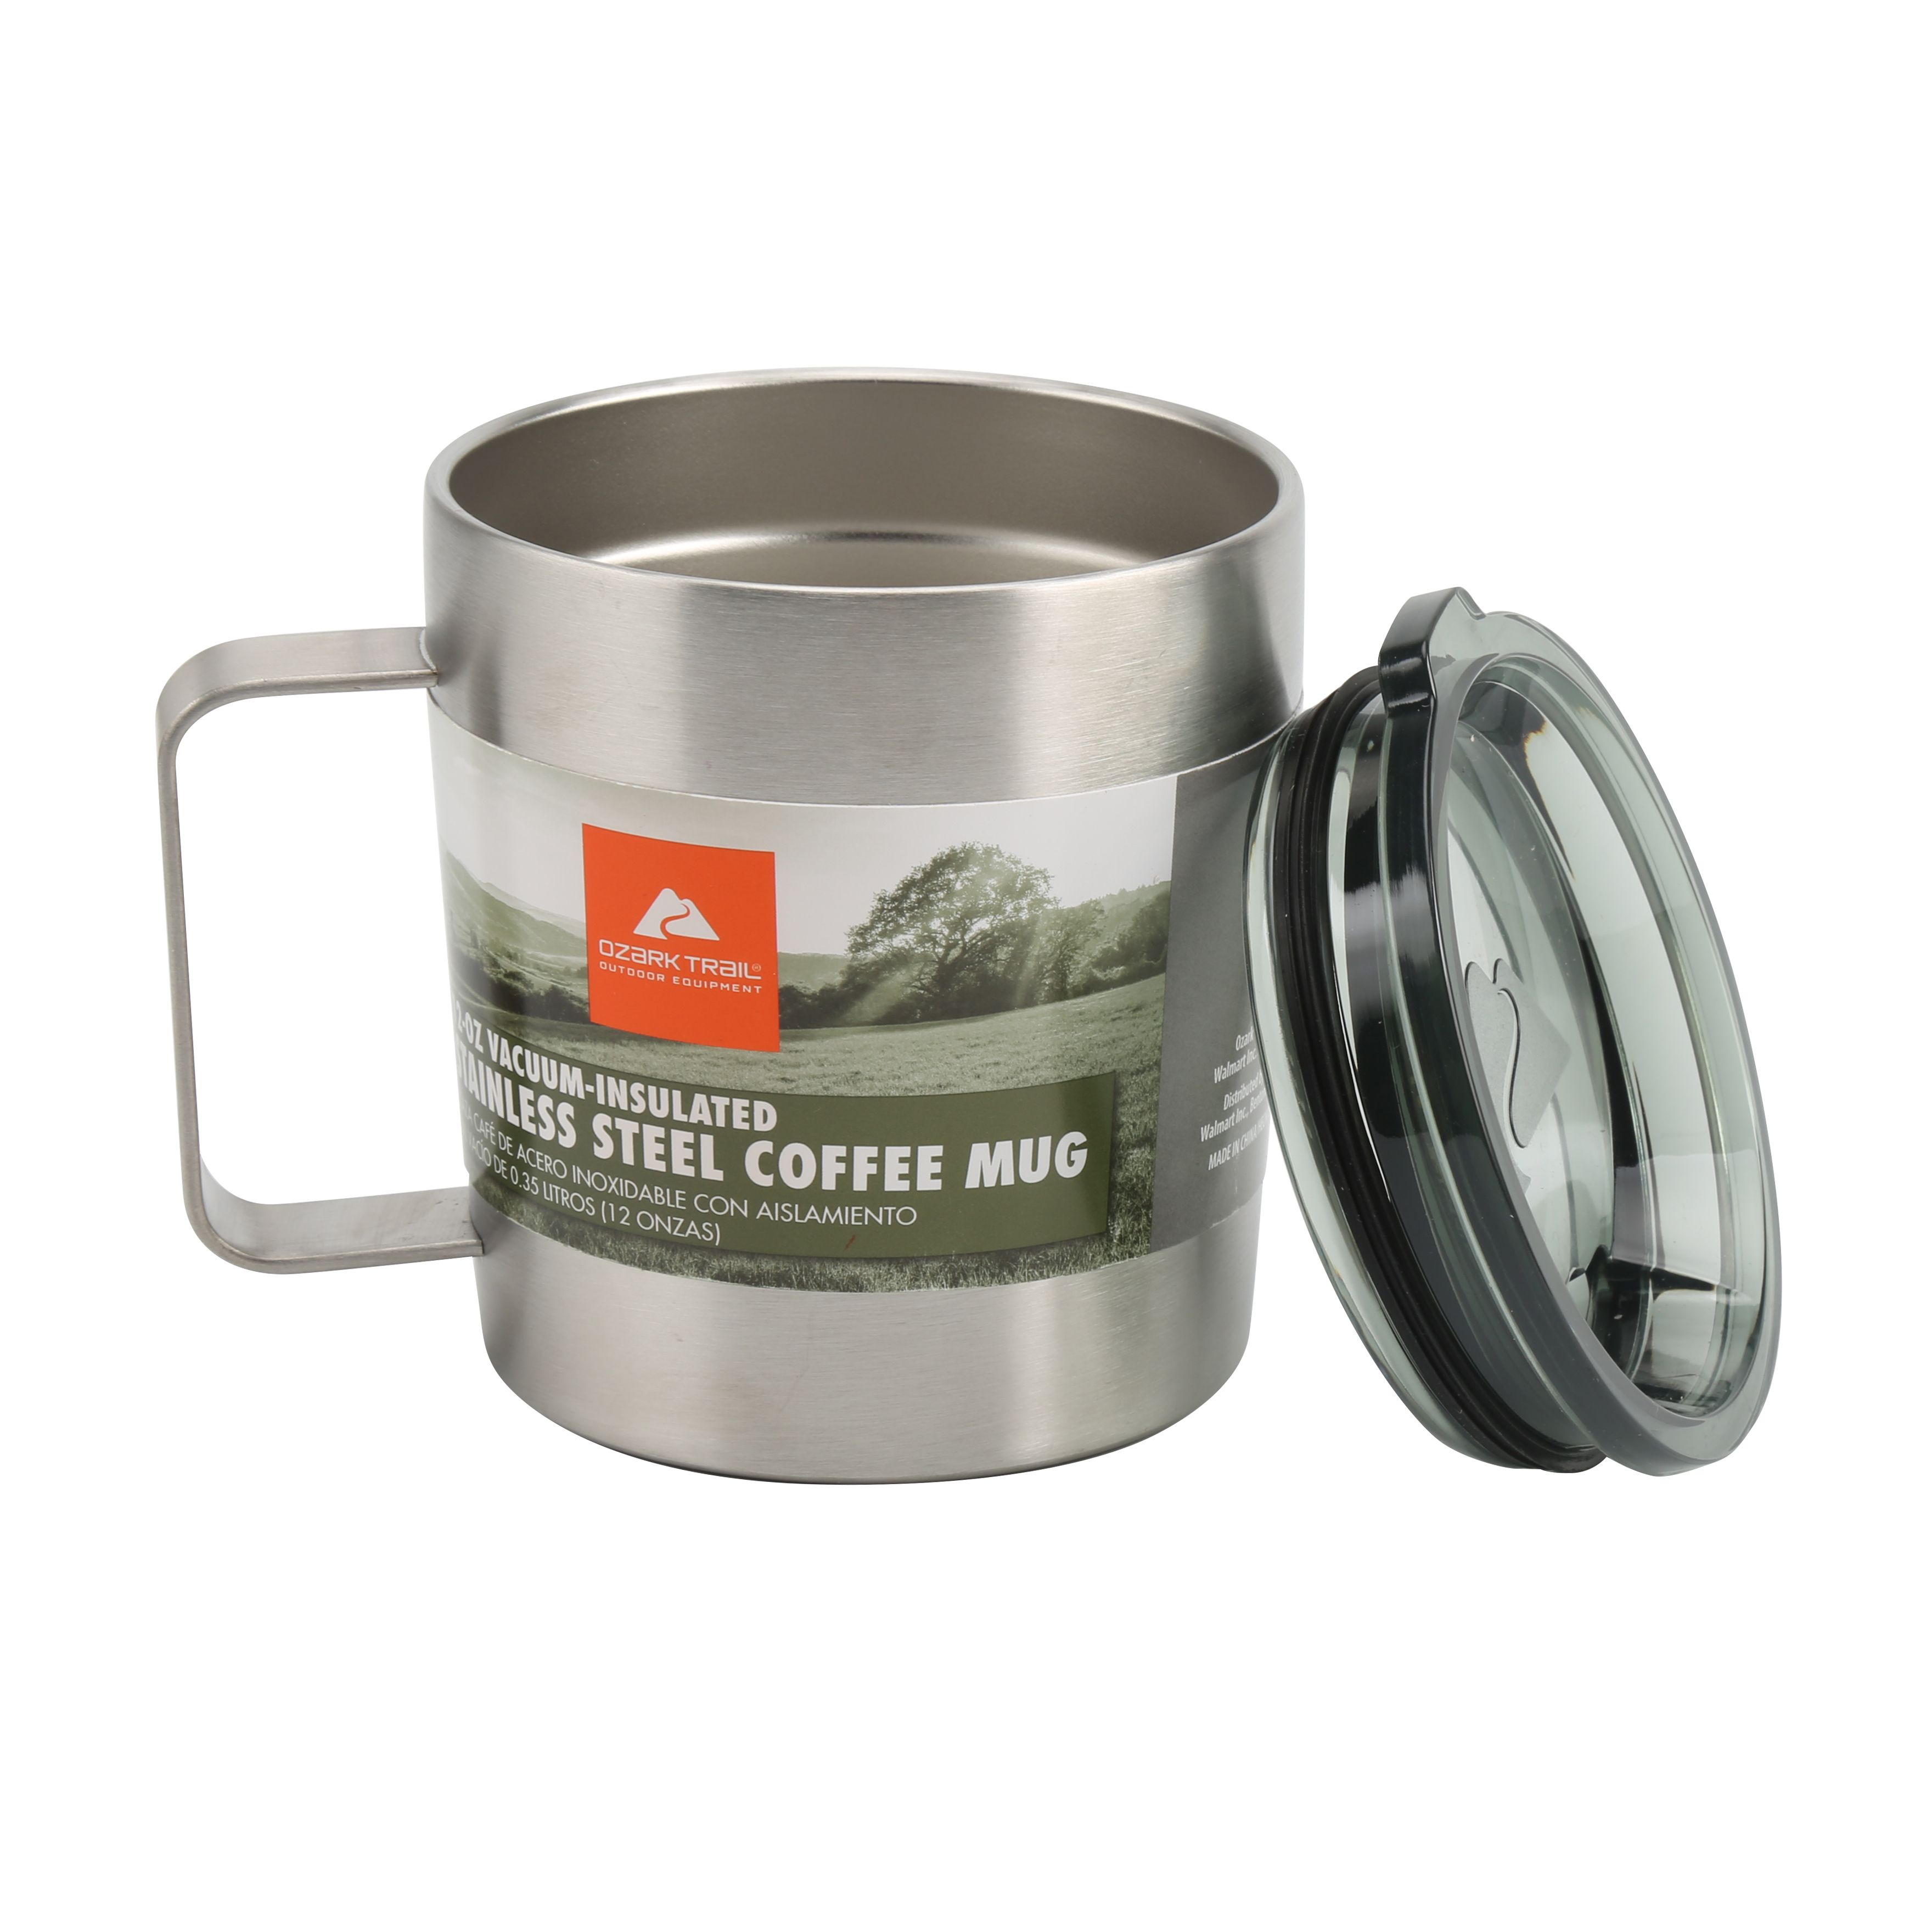 Sports & outdoors Insulated coffee mugs, Stainless steel